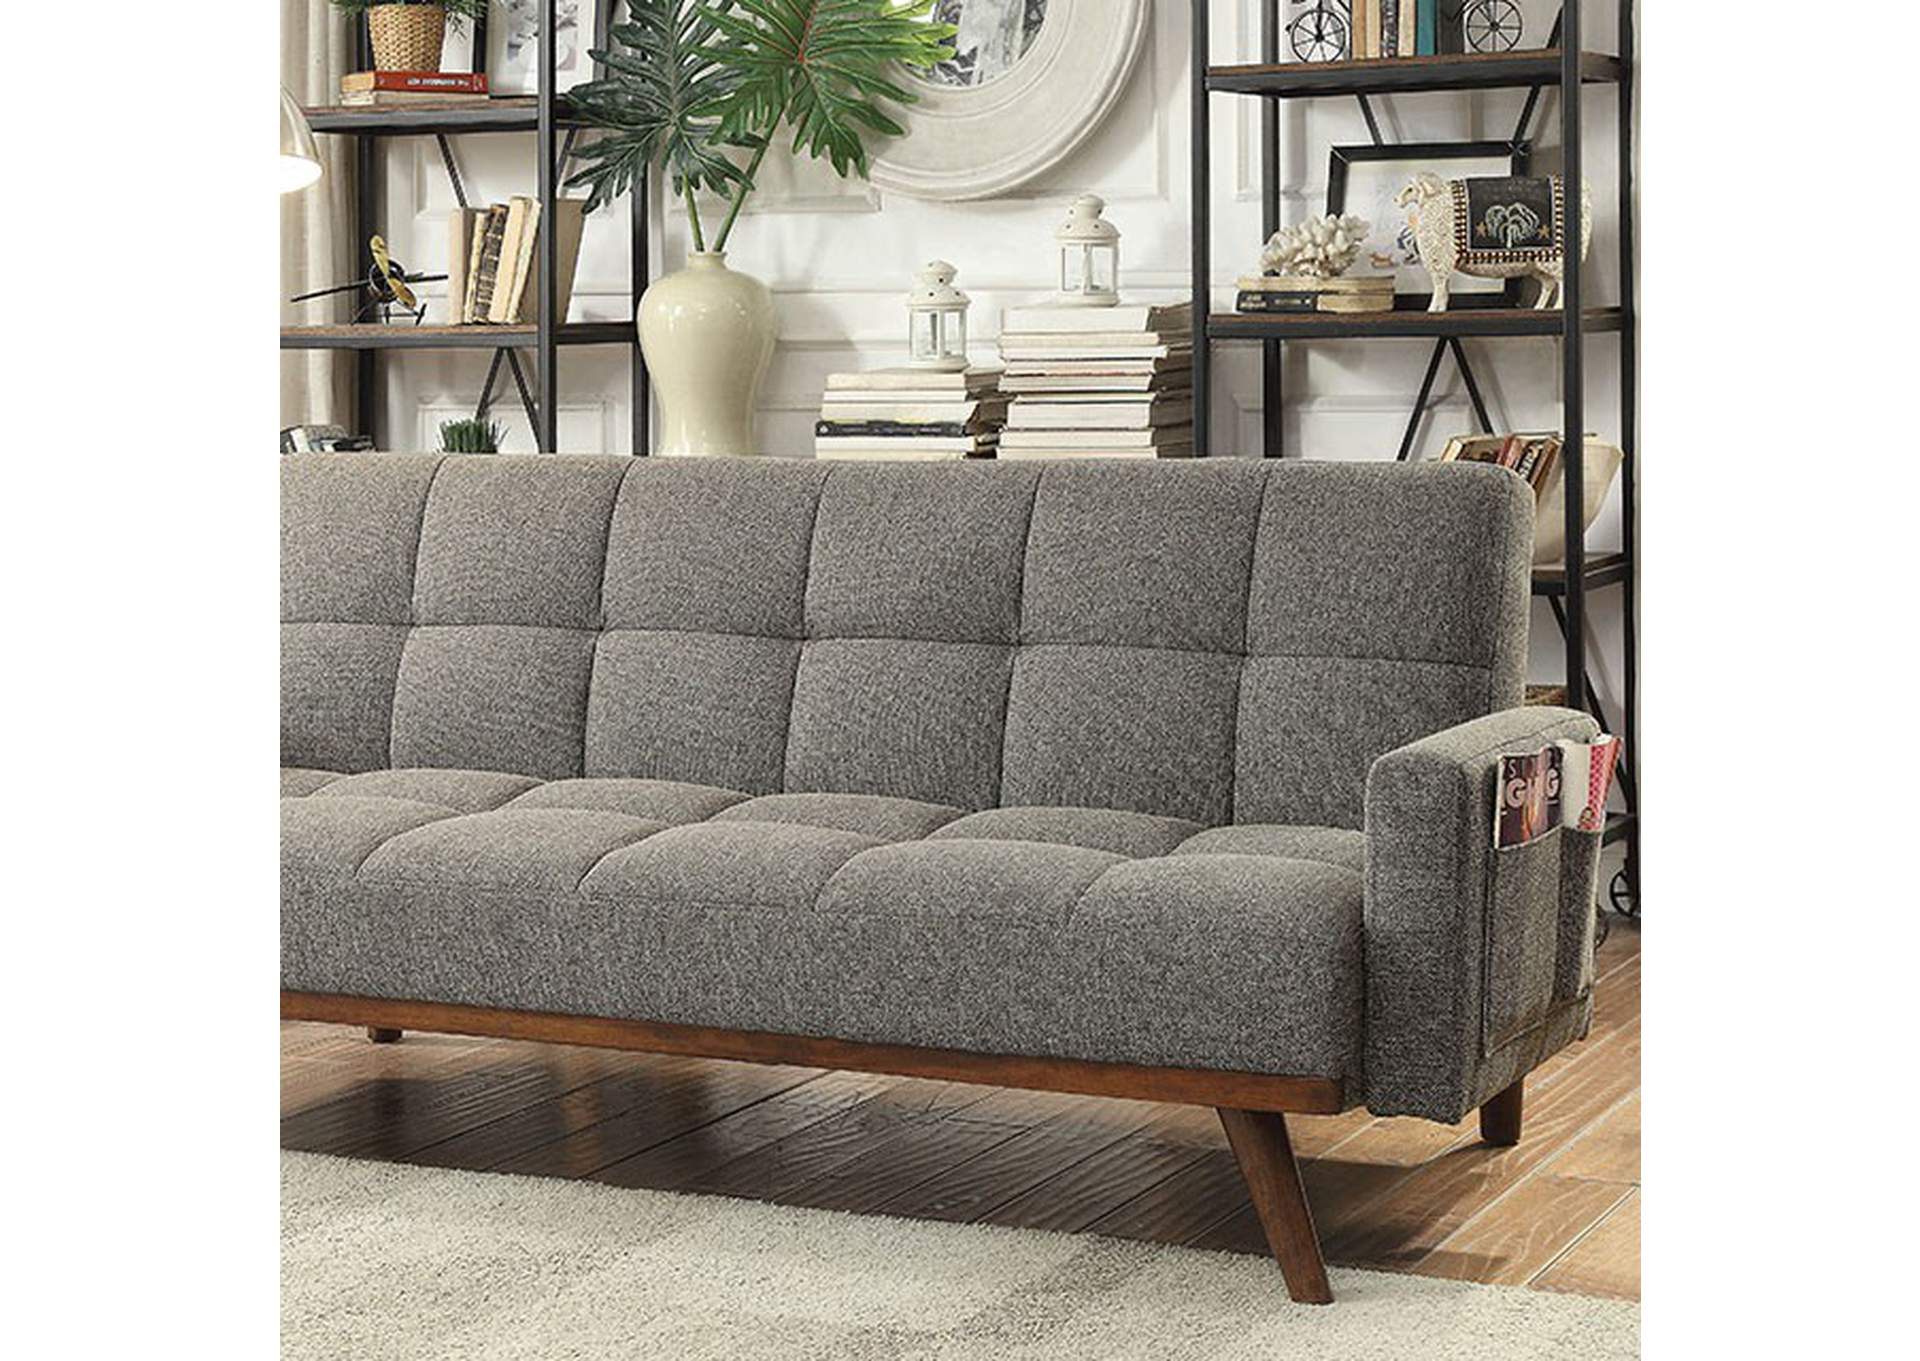 Nettie Gray Futon Sofa,Furniture of America